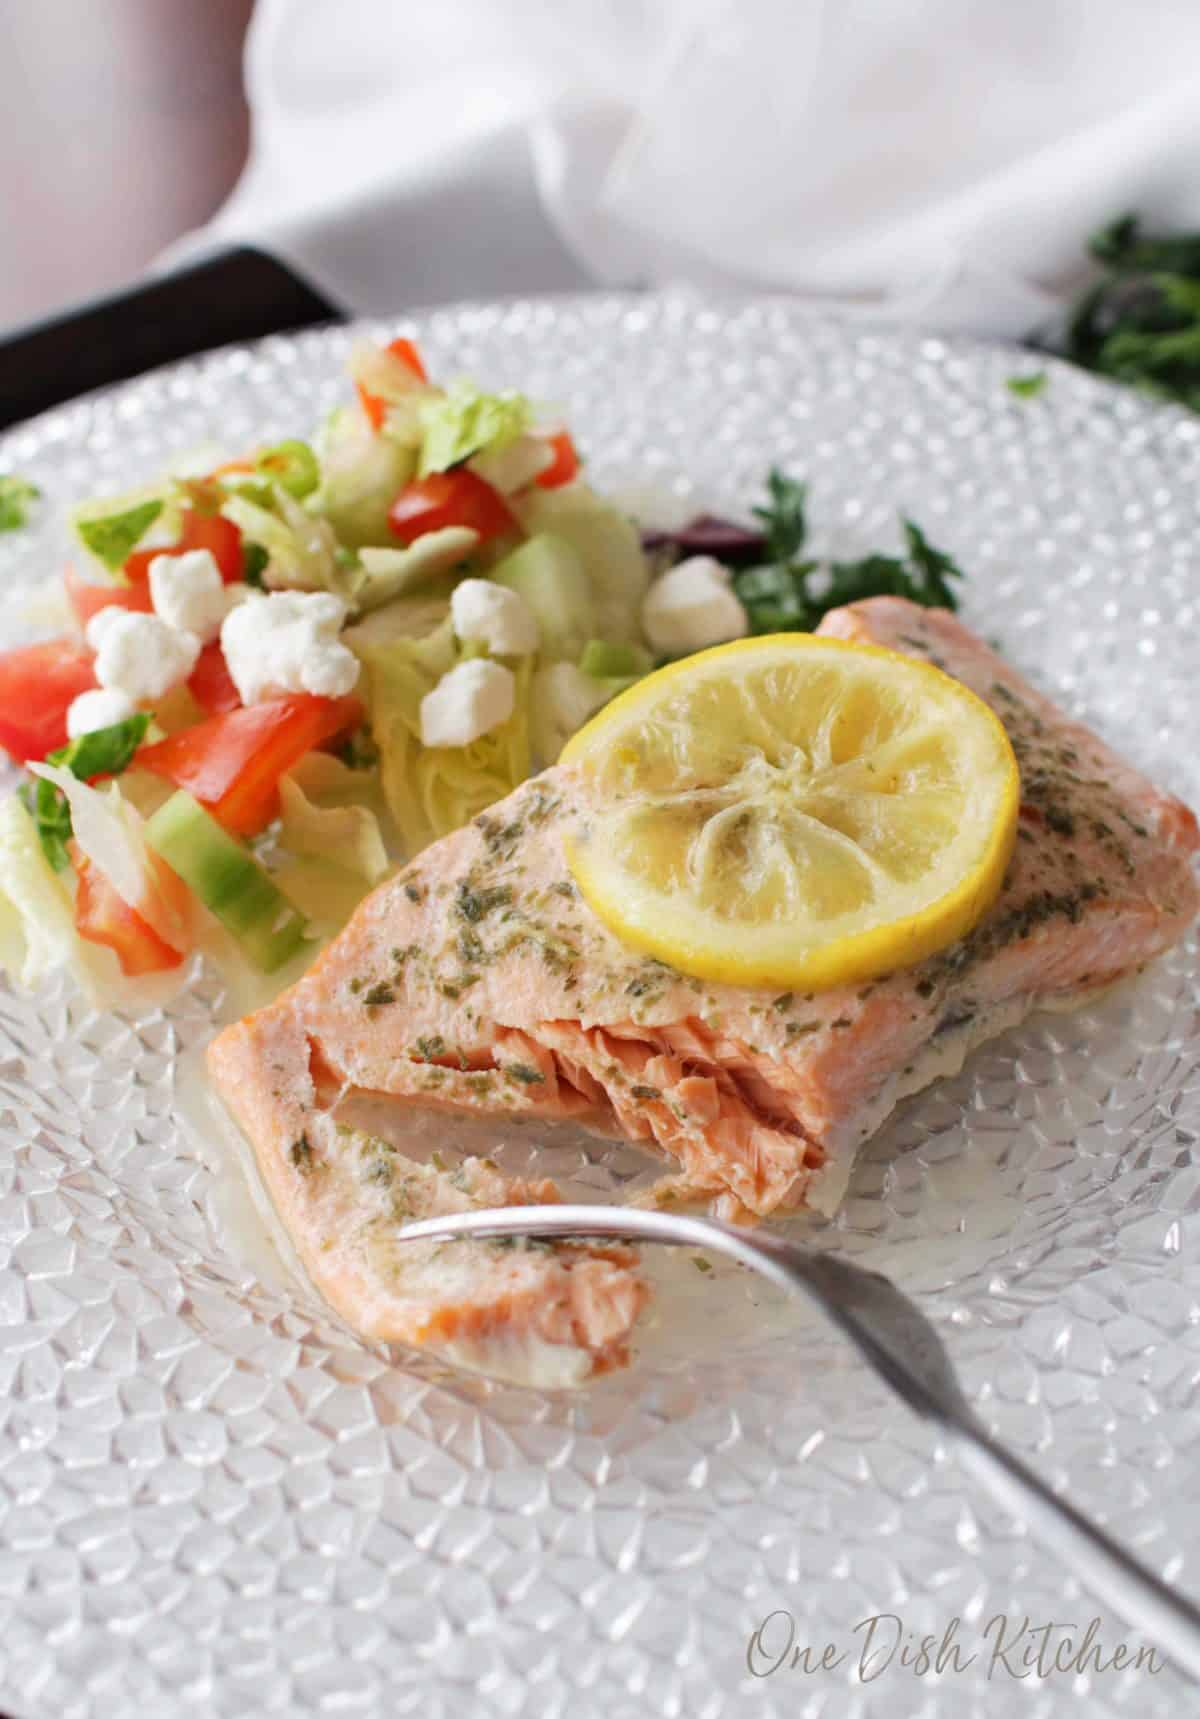 A forkful of Baked salmon topped with a lemon wheel next to a side salad of iceberg lettuce, diced tomatoes and feta cheese all on a plate